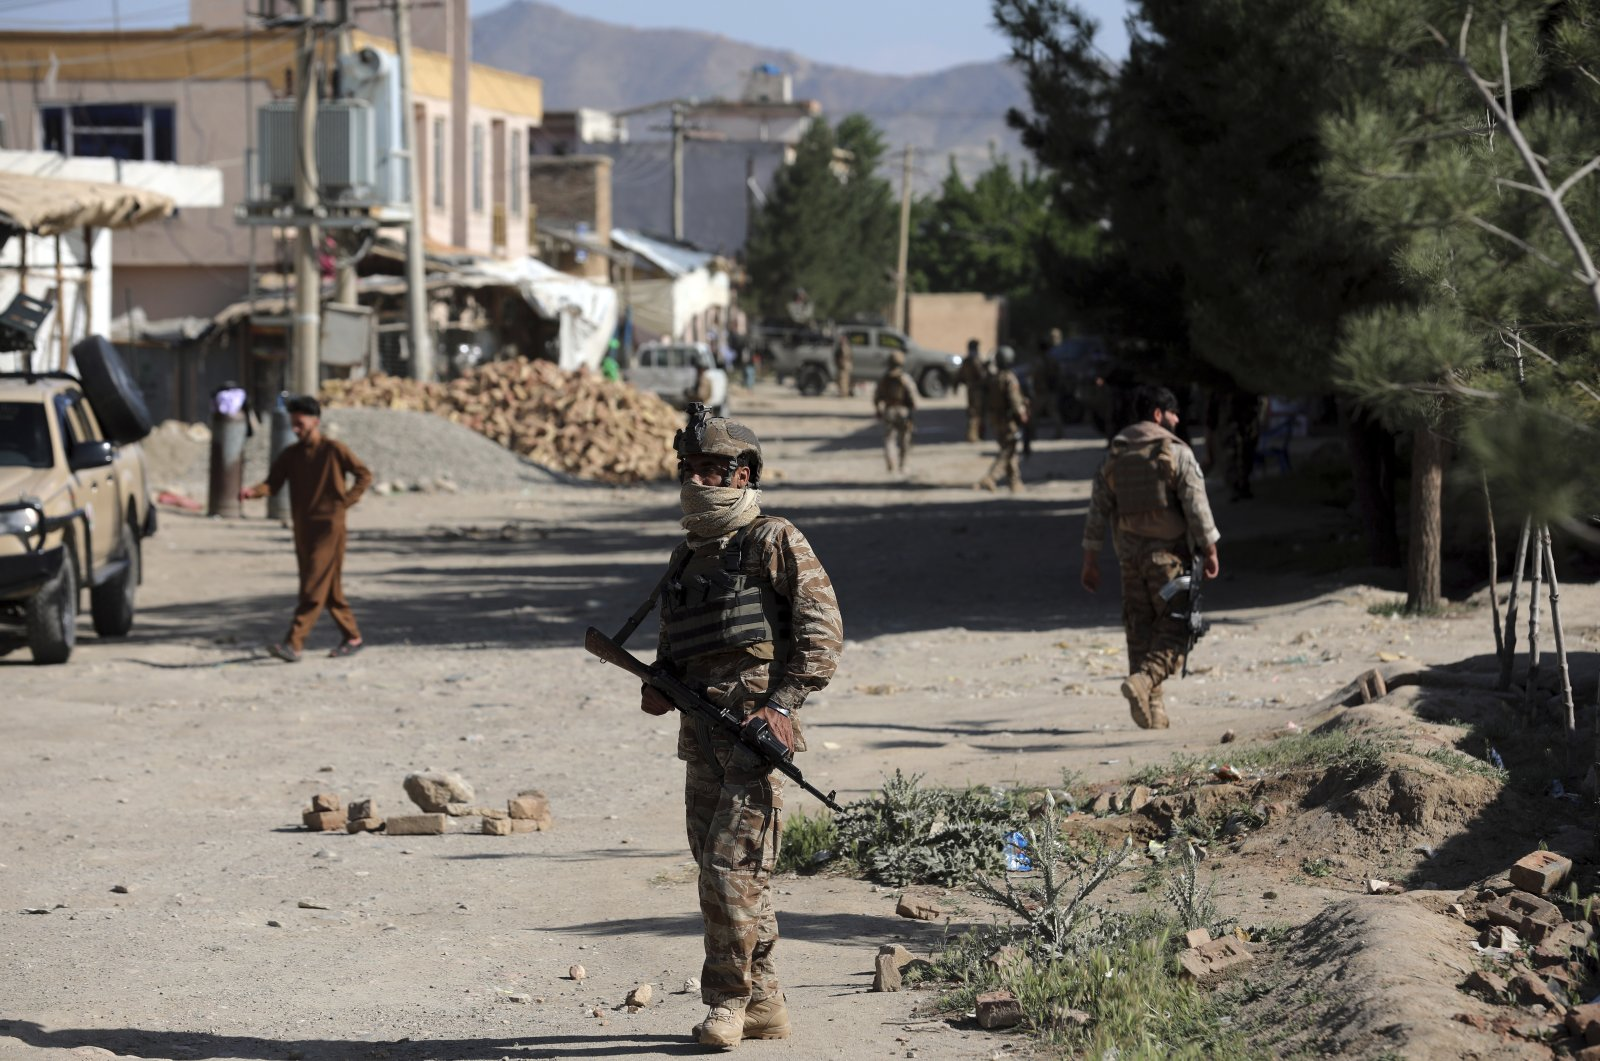 Afghan security personnel arrive at the site of a bomb explosion in Shakar Dara district of Kabul, Afghanistan, May 14, 2021. (AP Photo)